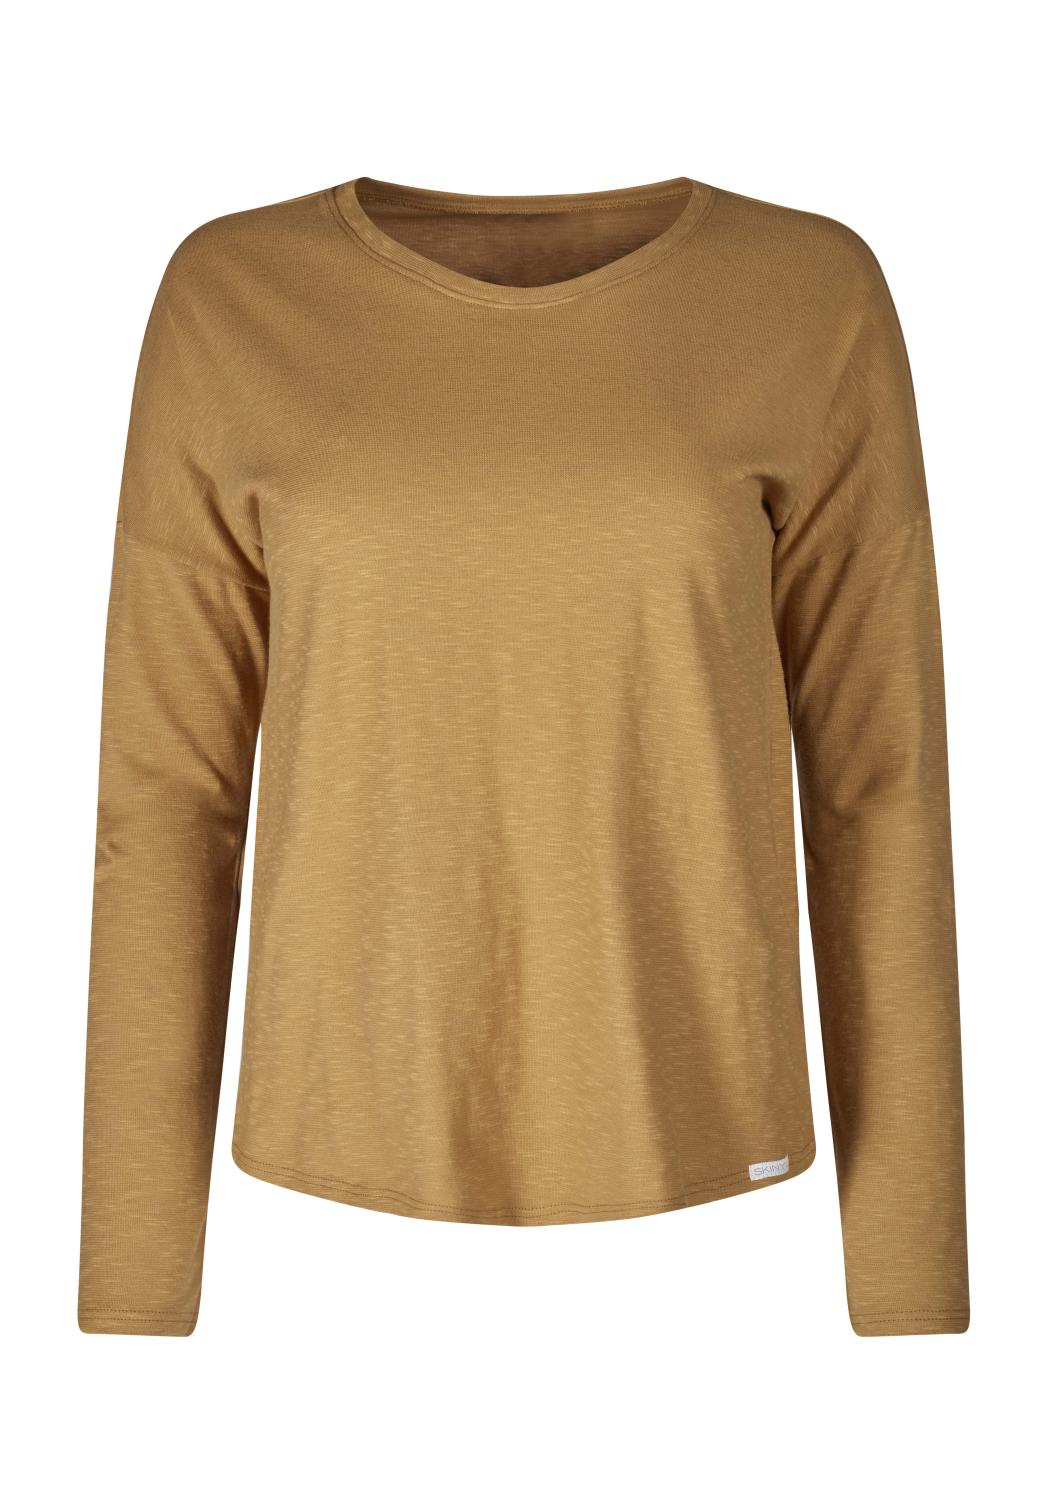 Skiny L. shirt long sleeve, bronze